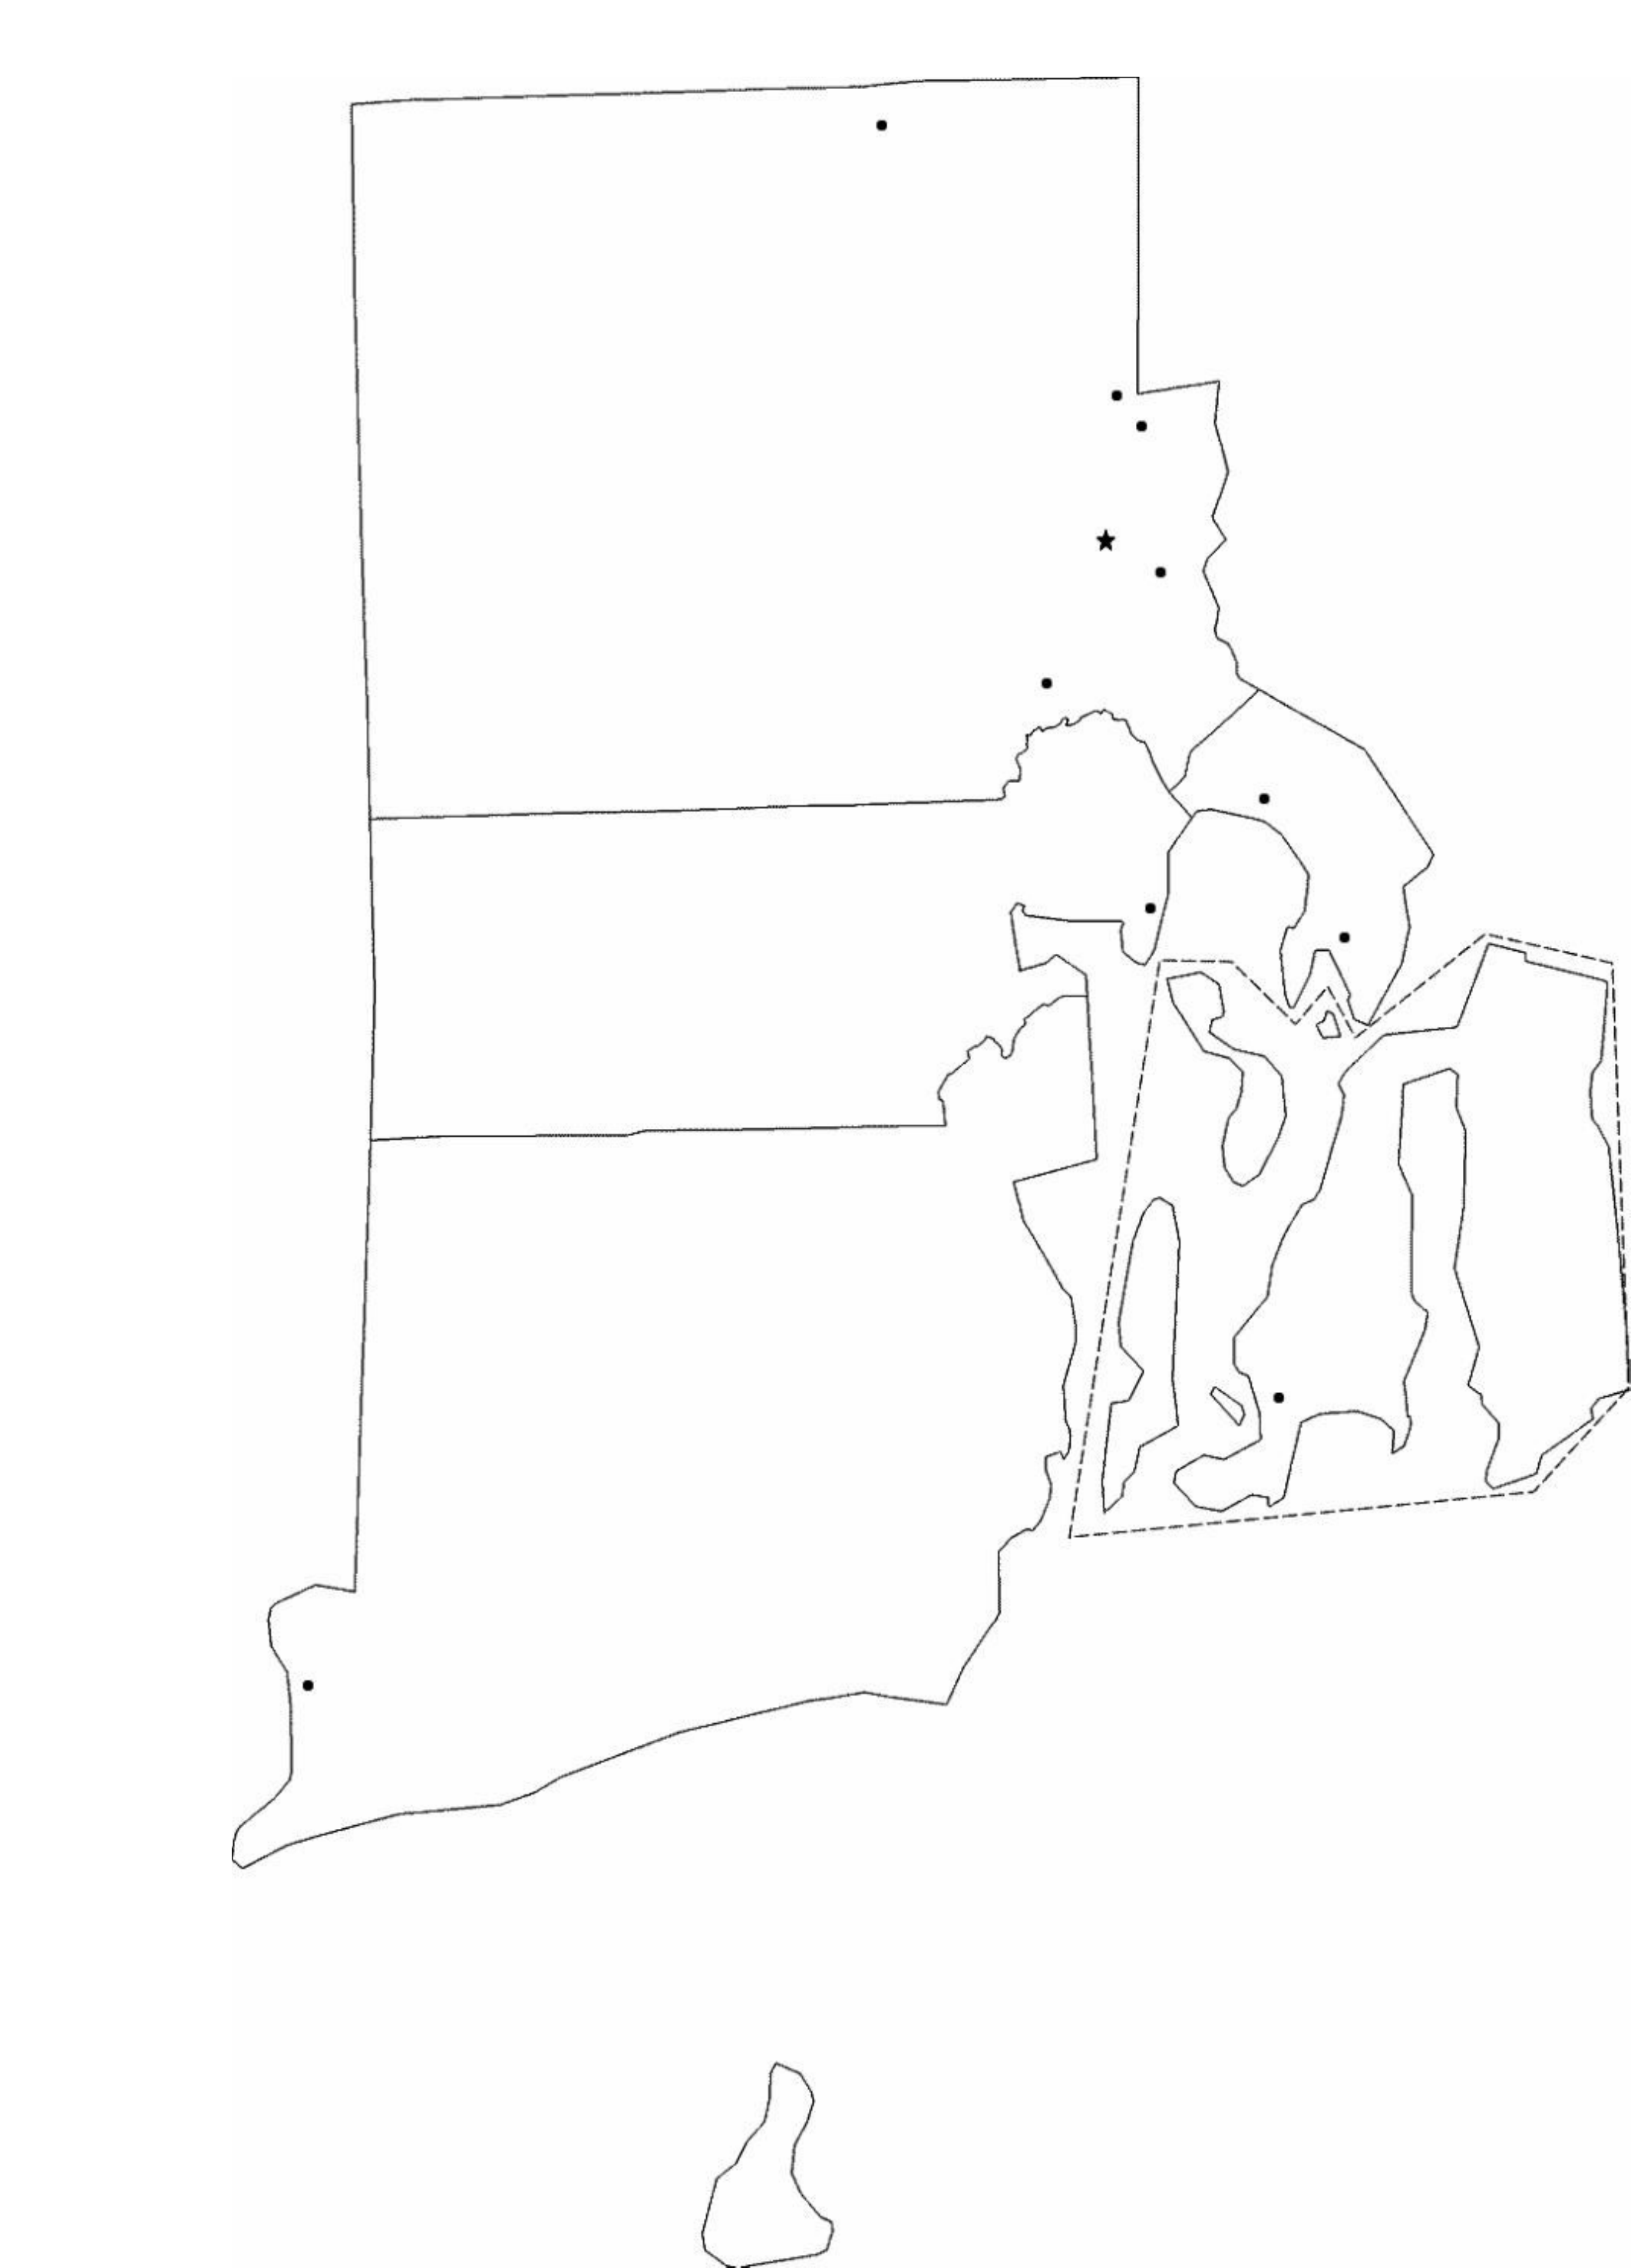 Blank Rhode Island City Map Free Download